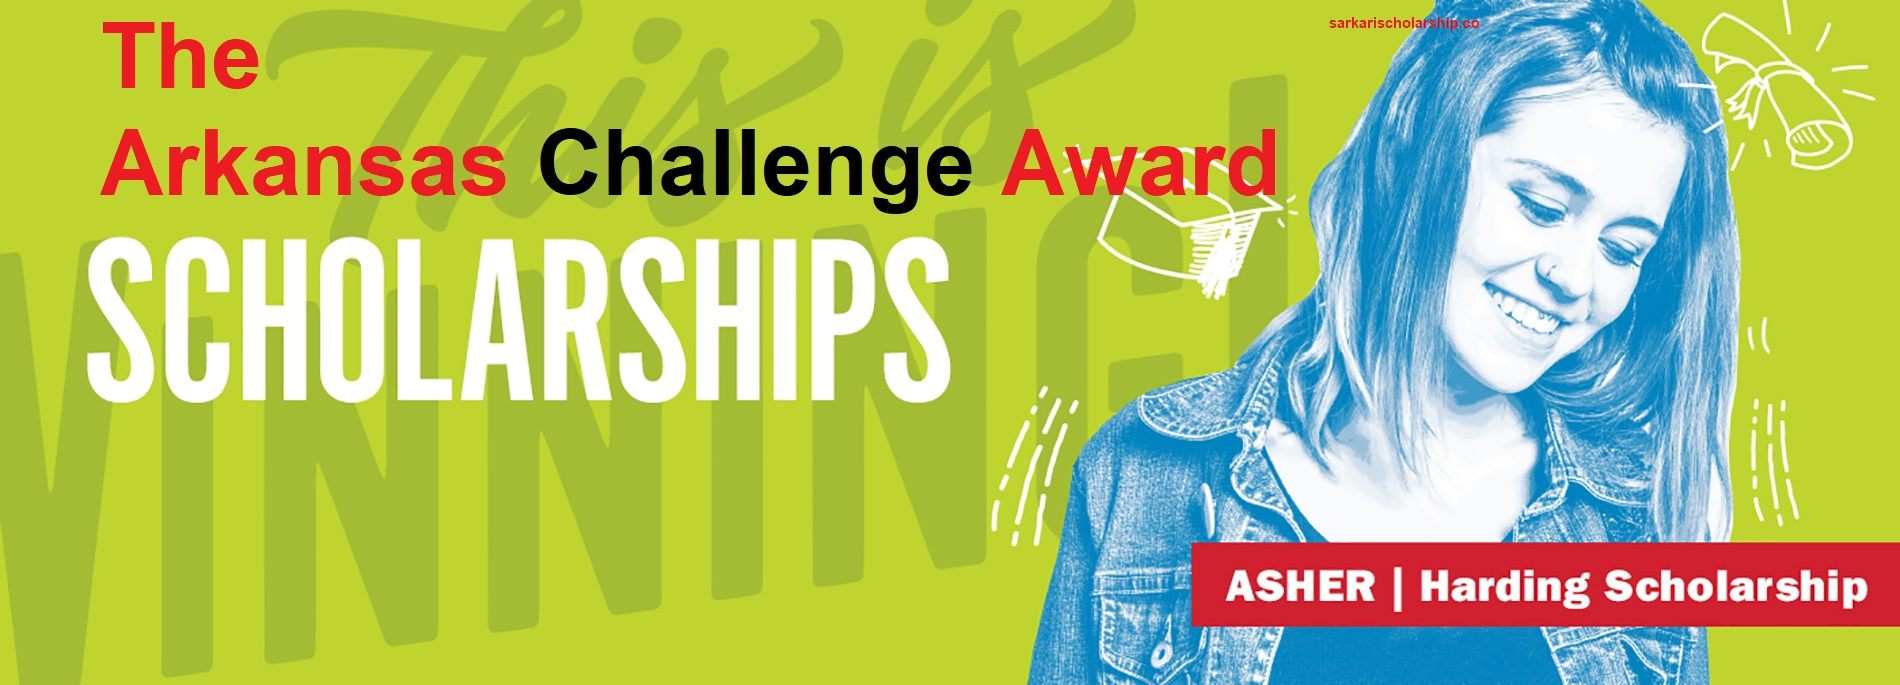 The Arkansas Challenge Award provides financial incentives to eligible Arkansas high school students who want to get an early start on college courses.